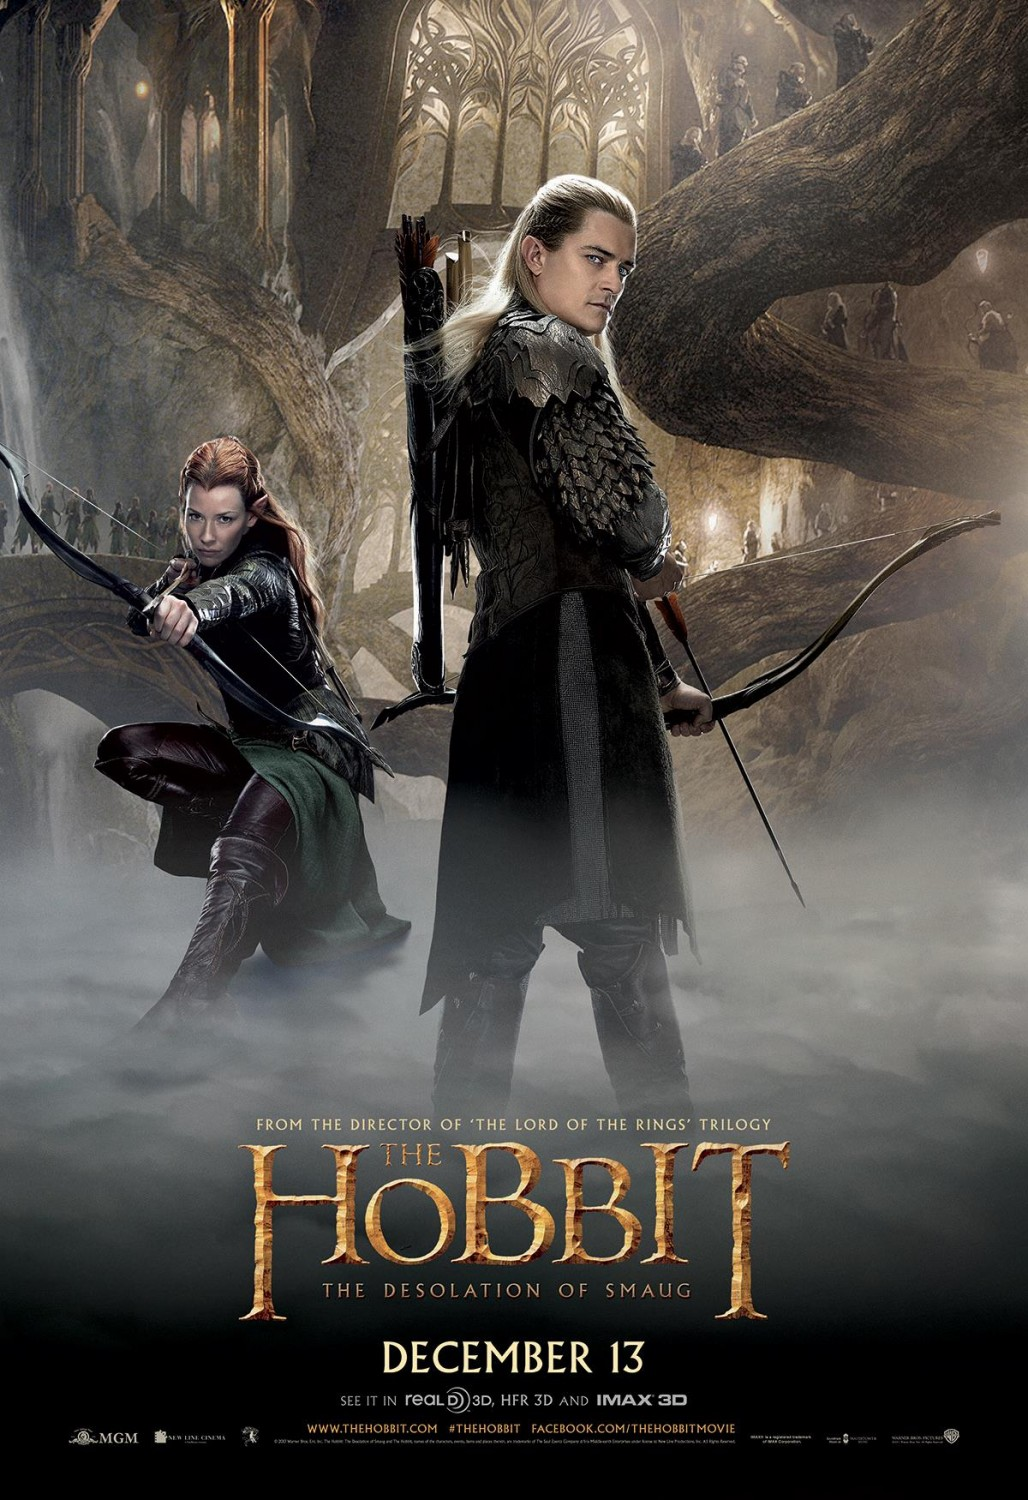 The Hobbit The Desolation of Smaug character poster 9 ...